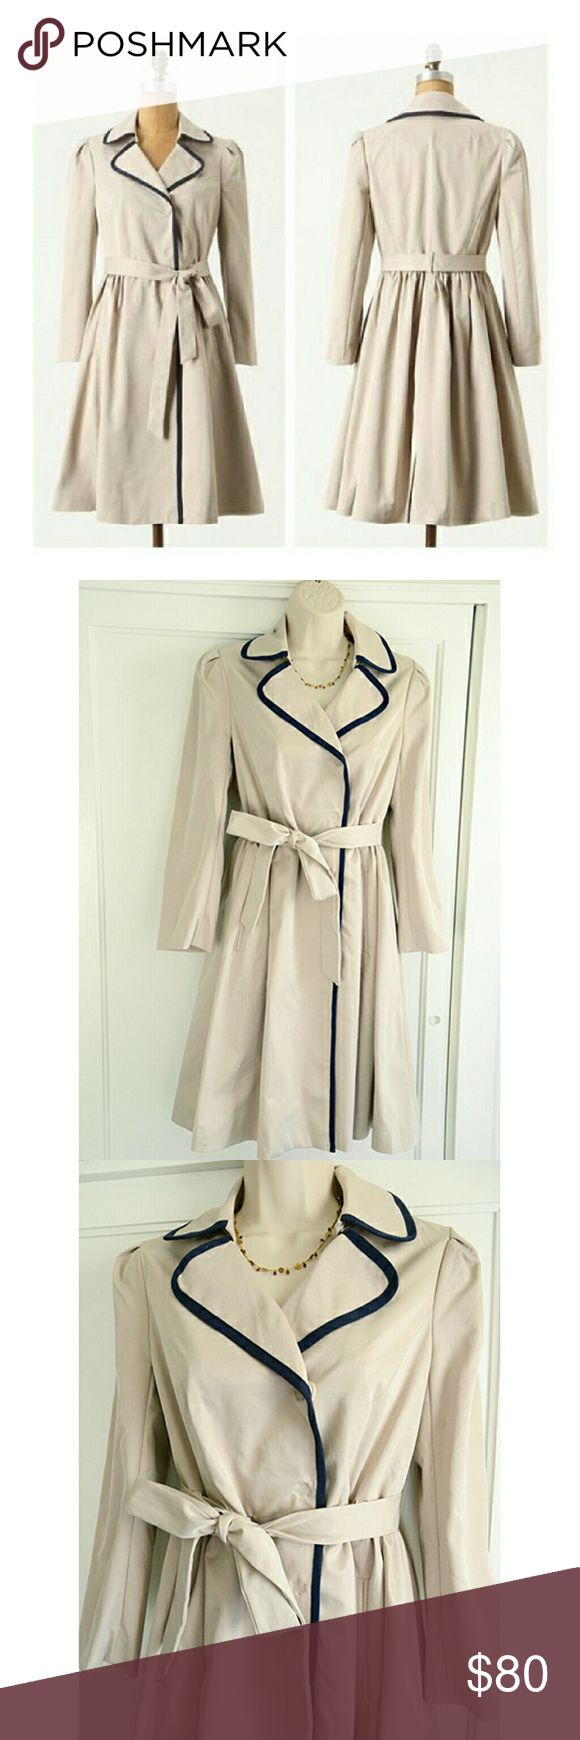 """Anthropologie Elevenses Fair Lady Trench NWOT This is absolutely darling, but I haven't worn it, so it's up for grabs. It's the Fair Lady trench coat by Elevenses, brand new without tags. True to size, it's a size 4 with the approx. measurements: bust: 17.5"""", waist: about 14.5"""" across before being cinched by belt, total length: 37"""". It's a pale stone-beige with navy piping. So feminine and figure-flattering. The price is firm, thank you kindly! Anthropologie Jackets & Coats Trench Coats"""